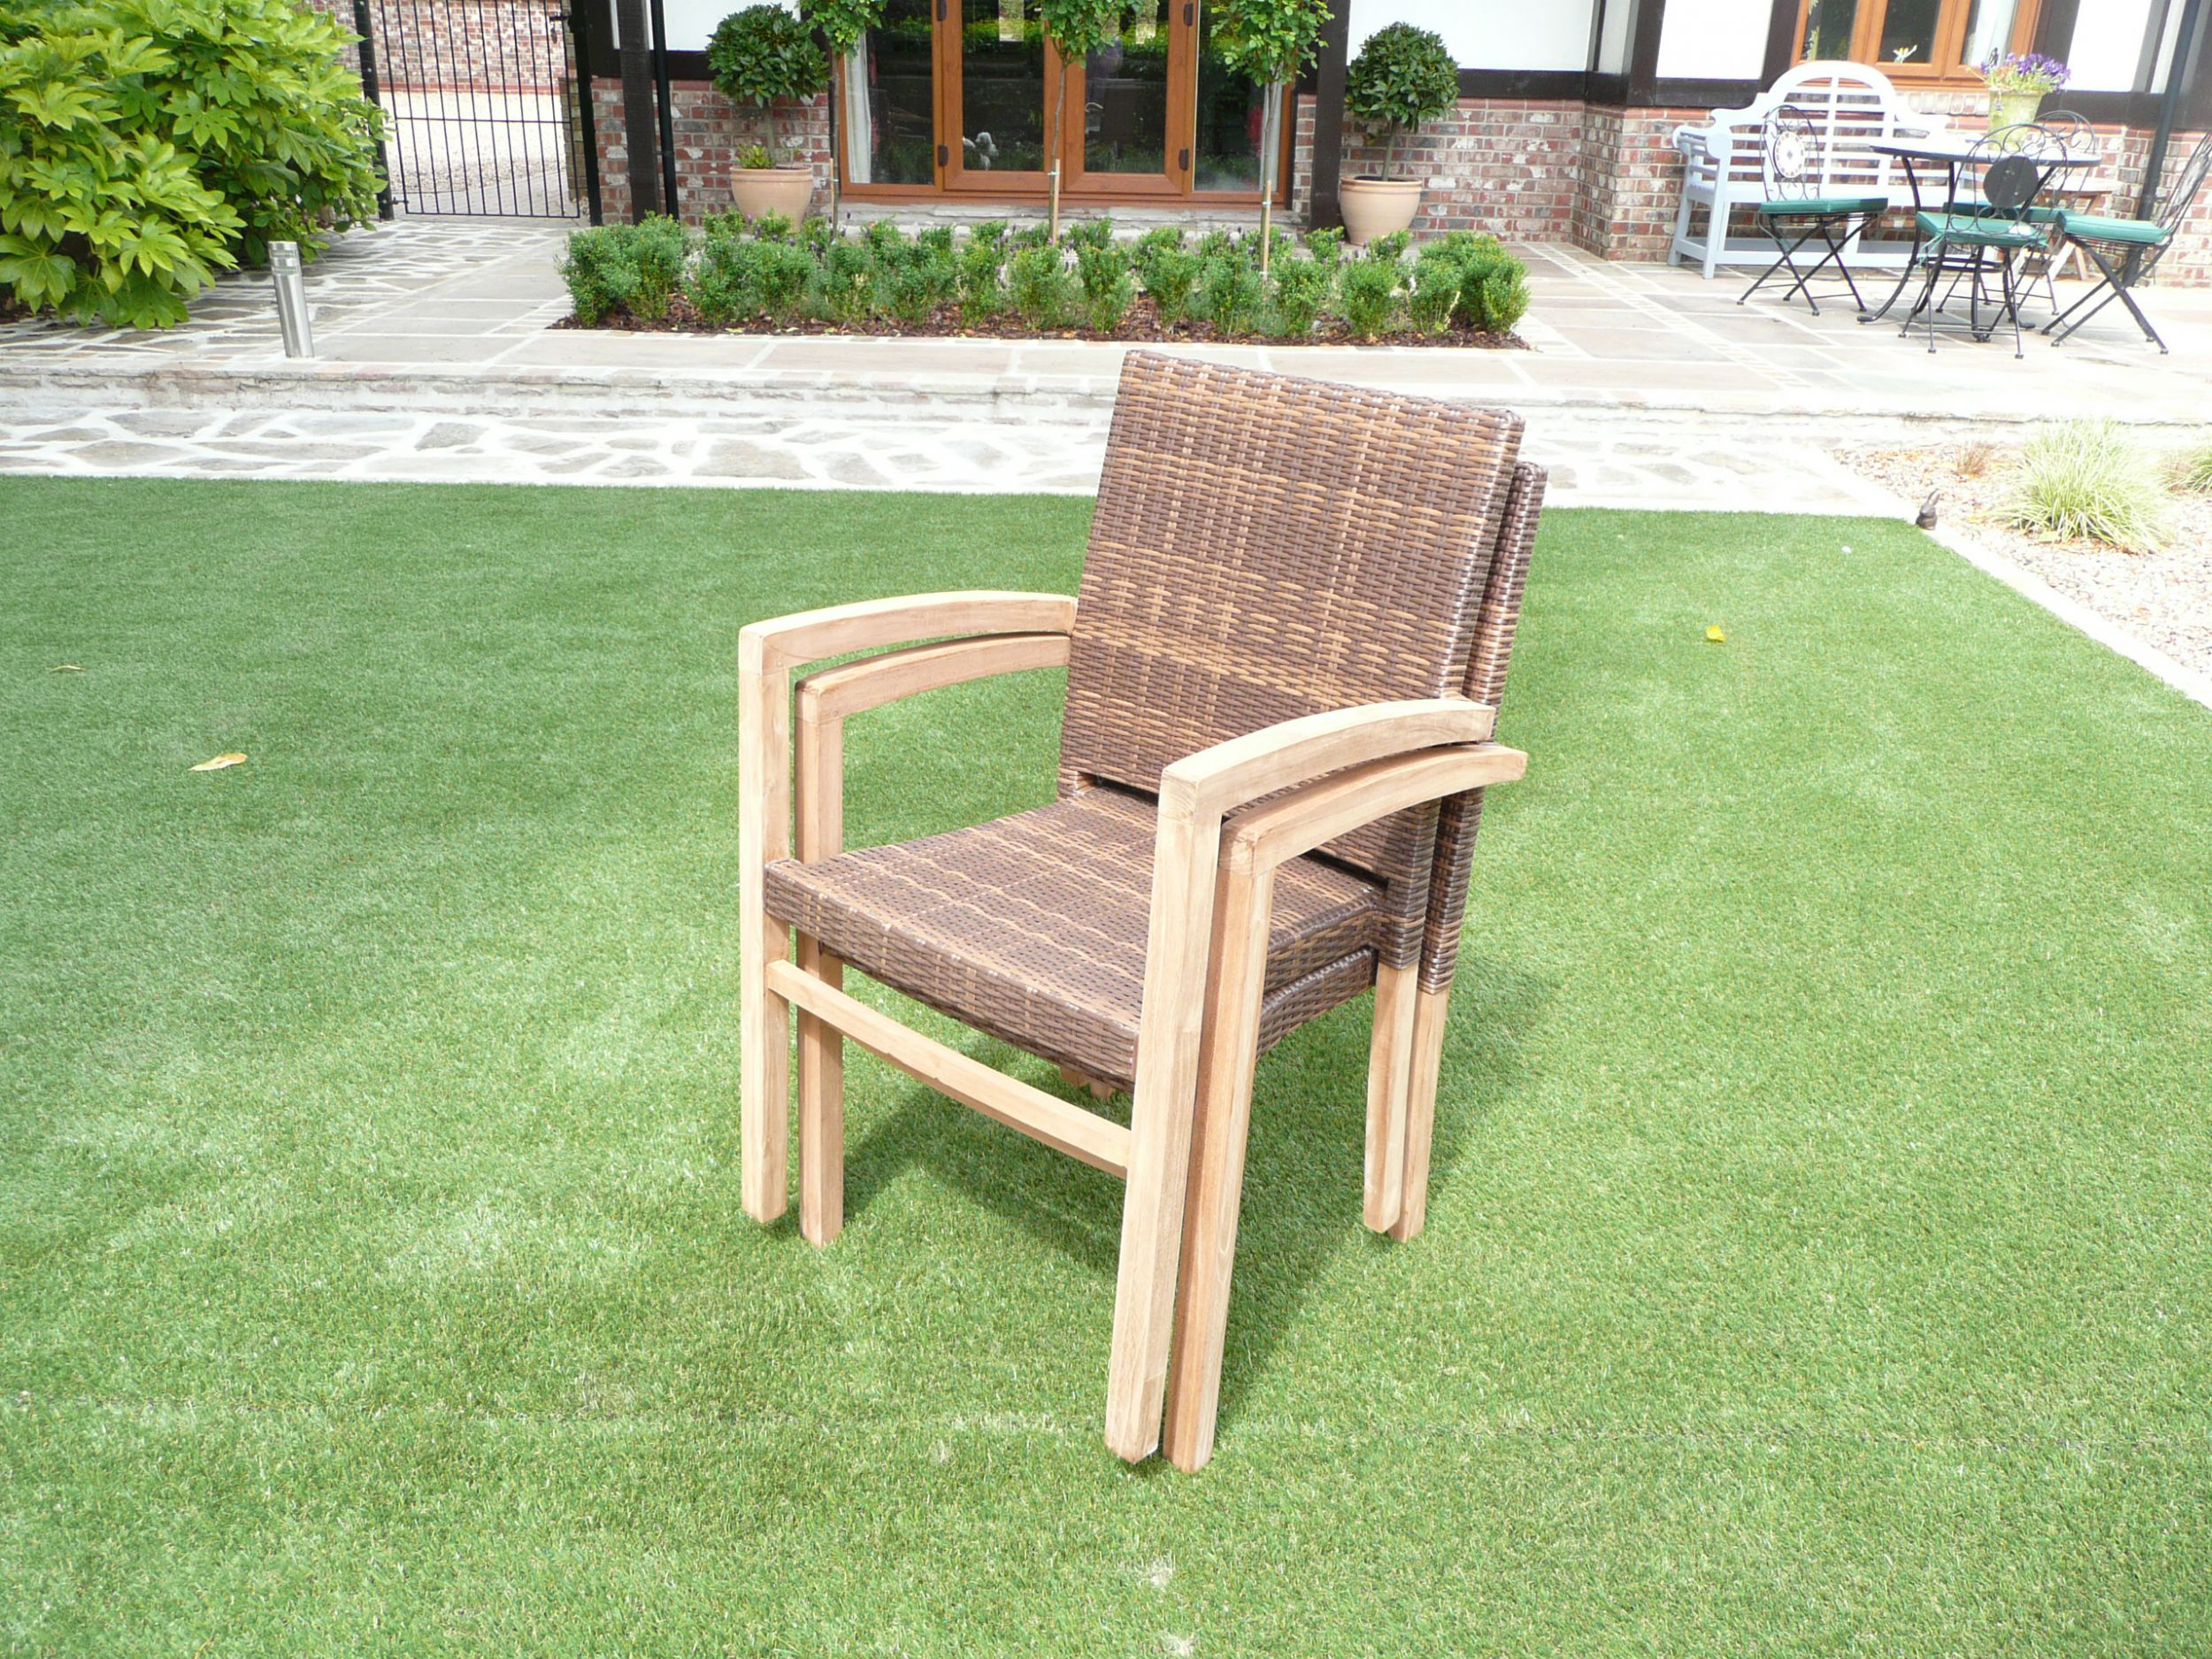 Garden Furniture 8 Seater Patio Set cannes 8 seater teak & rattan patio set | humber imports